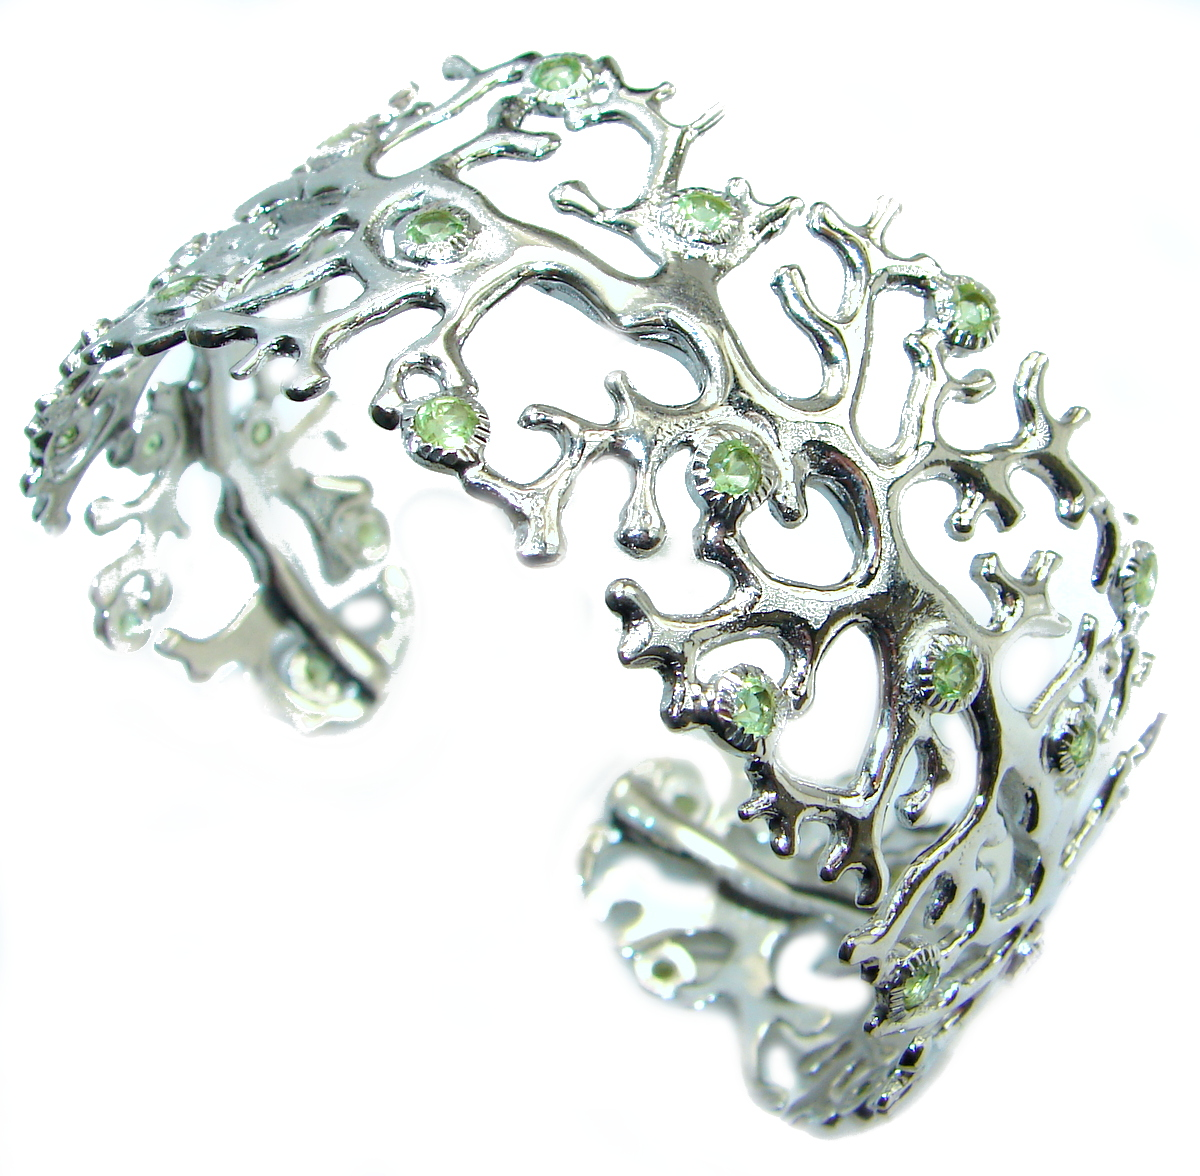 Chunky authentic Peridot .925 Sterling Silver handcrafted Bracelet / Cuff